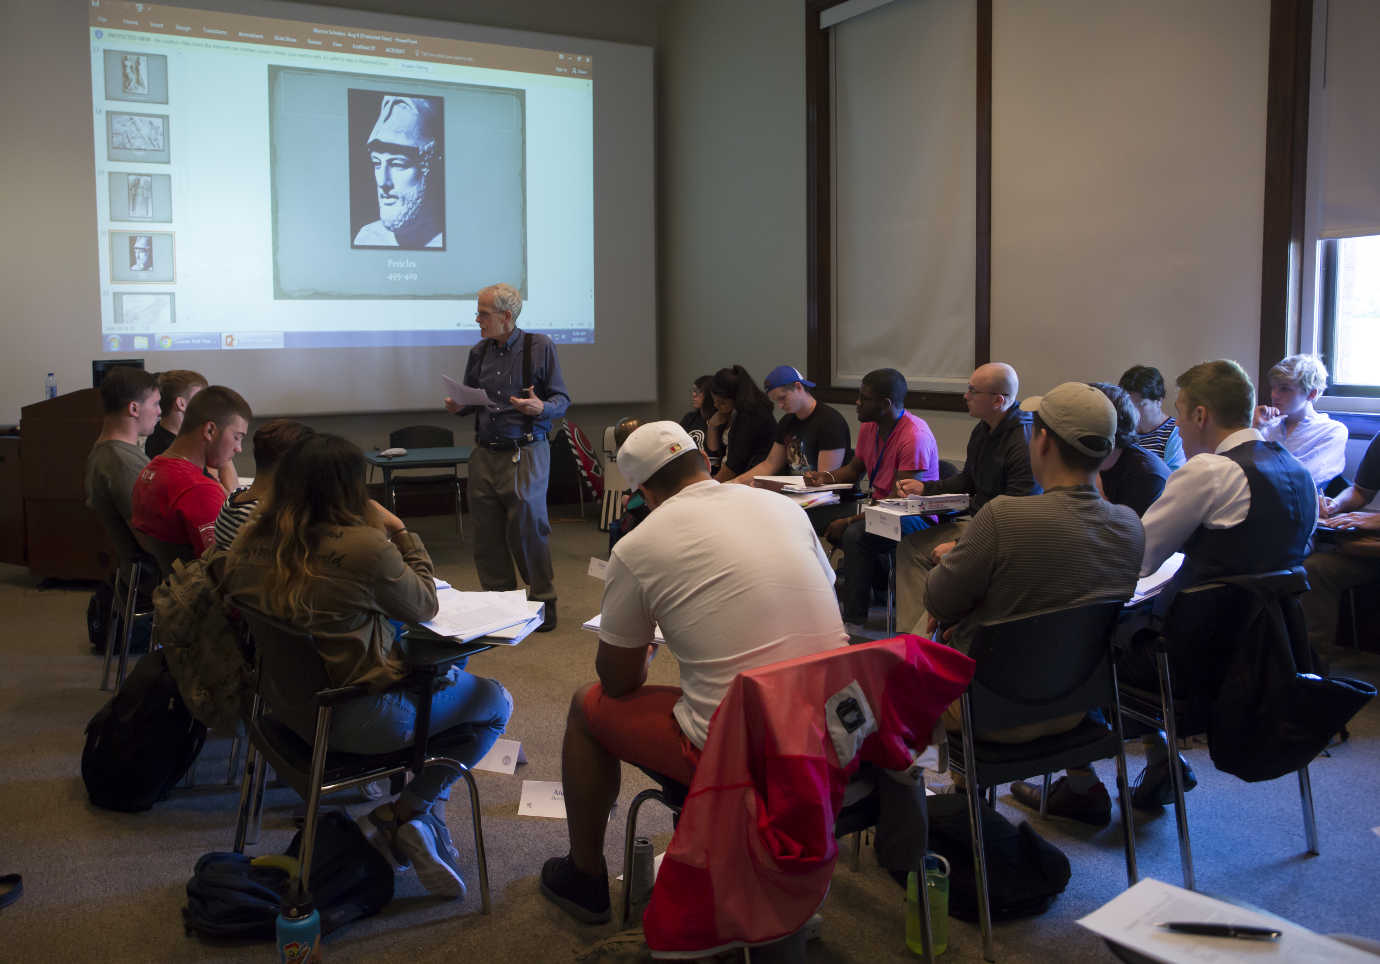 """The Warrior-Scholar Project prepares veterans for college through an academically-rigorous """"boot camp"""" experience. Image courtesy of the Warrior-Scholar Project."""